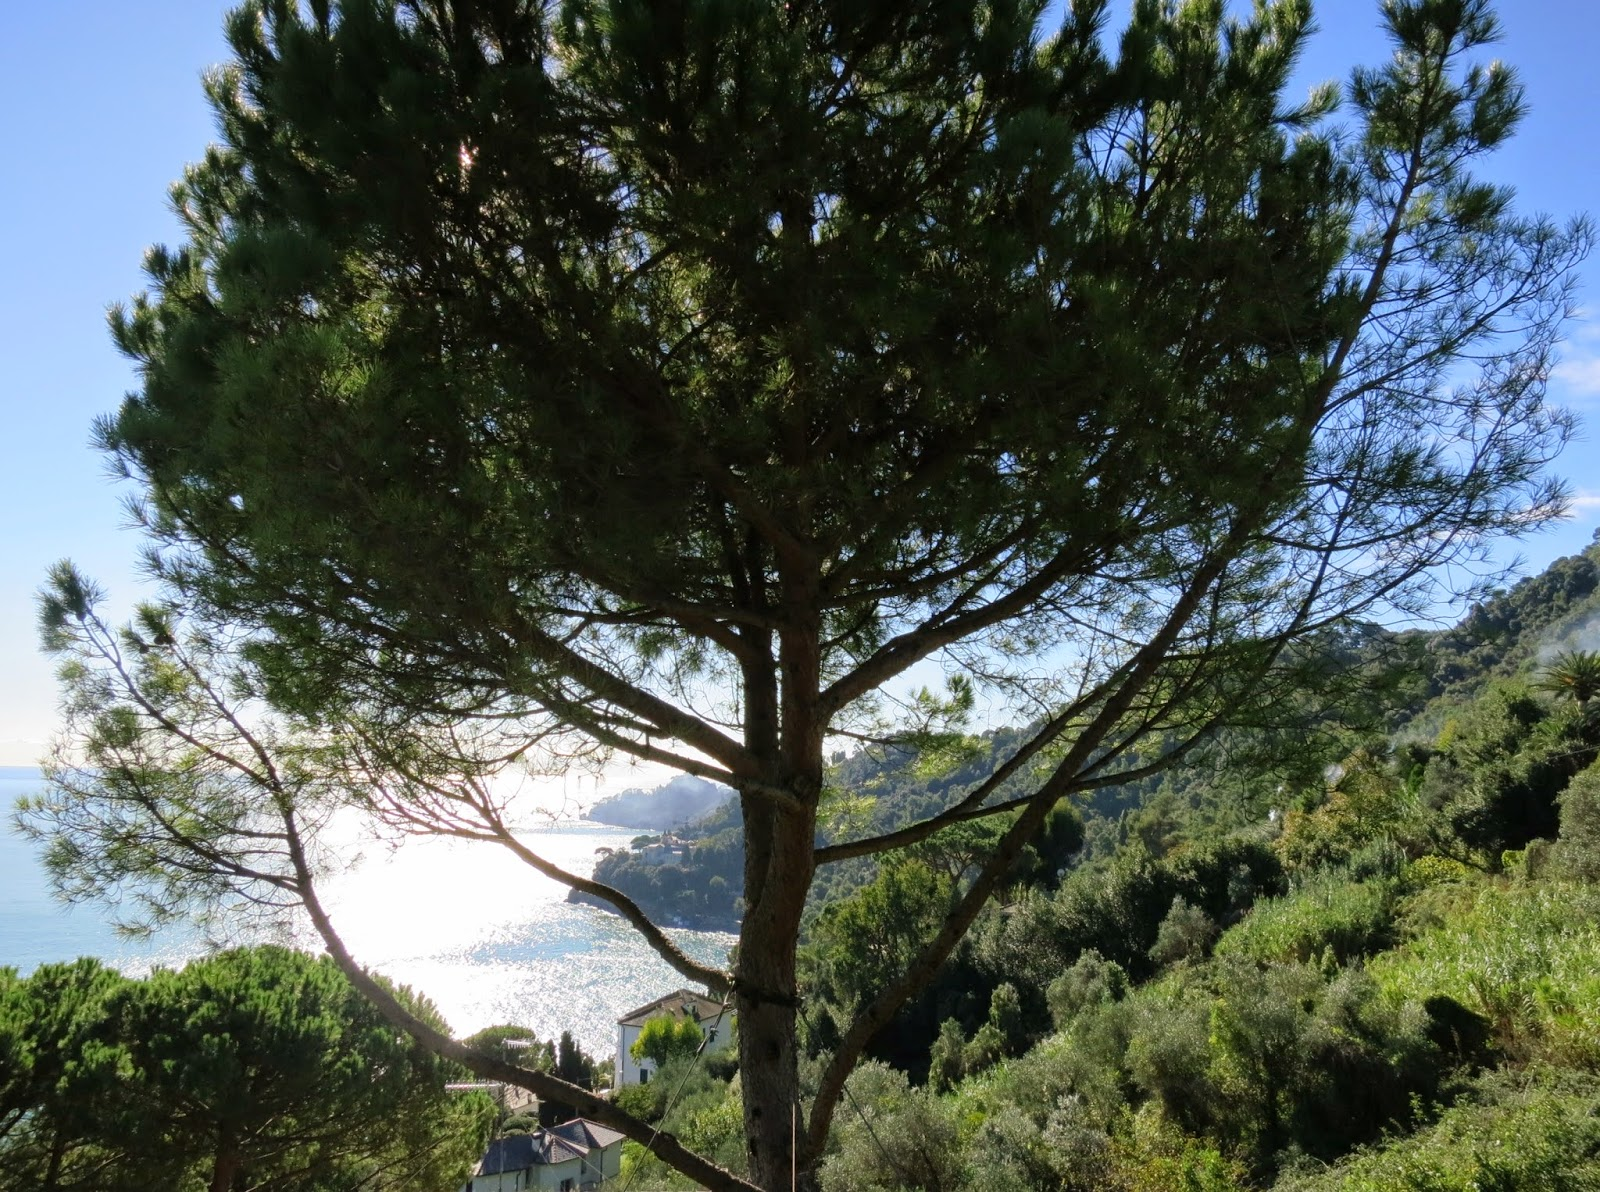 View from Madonna della Neve toward Portofino